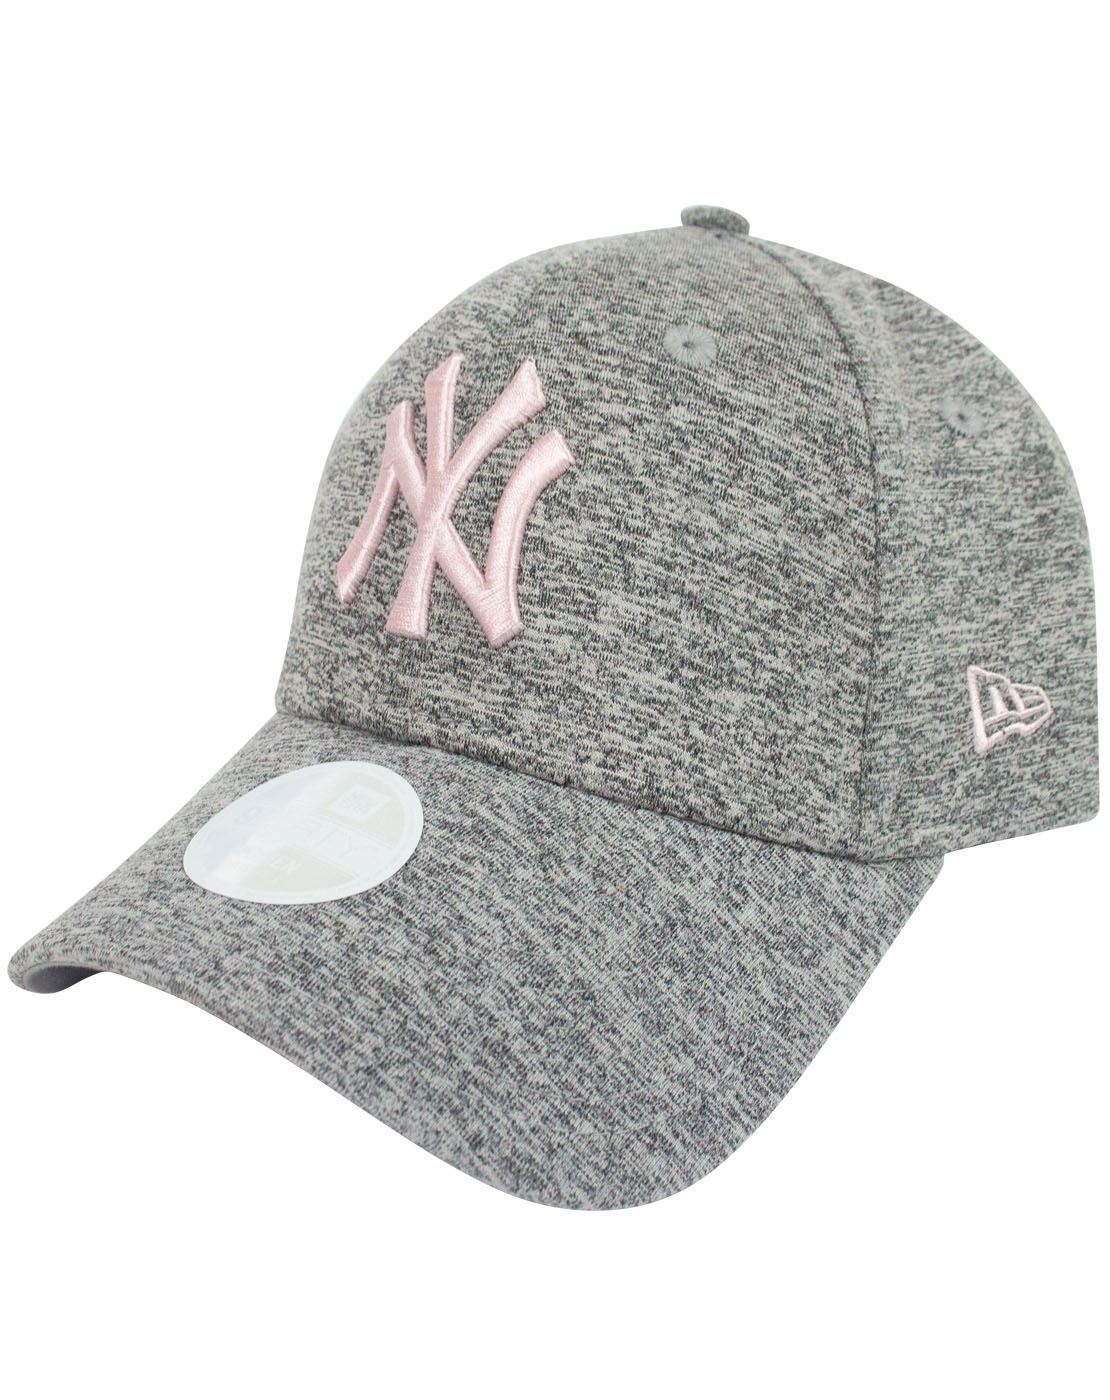 New Era 9Forty MLB New York Yankees Tech Jersey Pink Women s Cap – Vanilla  Underground 9c897bb68b9